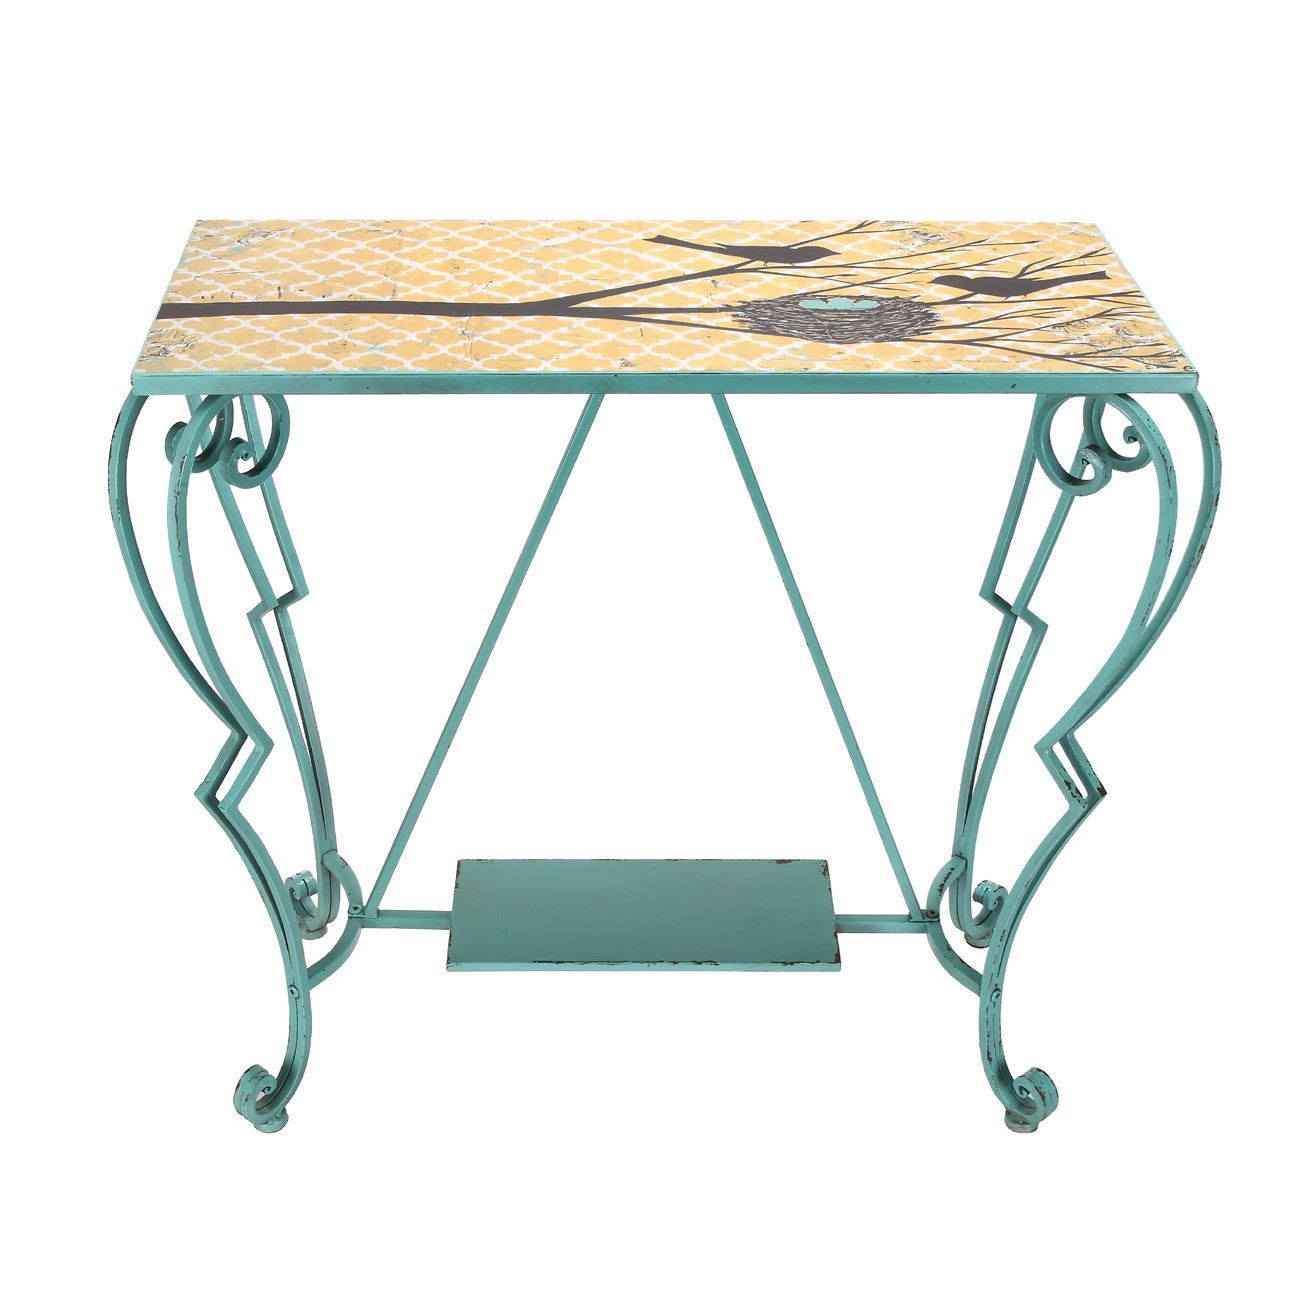 Iron Table Cumba Selection Mobilya Dekorasyon Ayd Nlatma Sofra  # Tabl Ferforge Modele